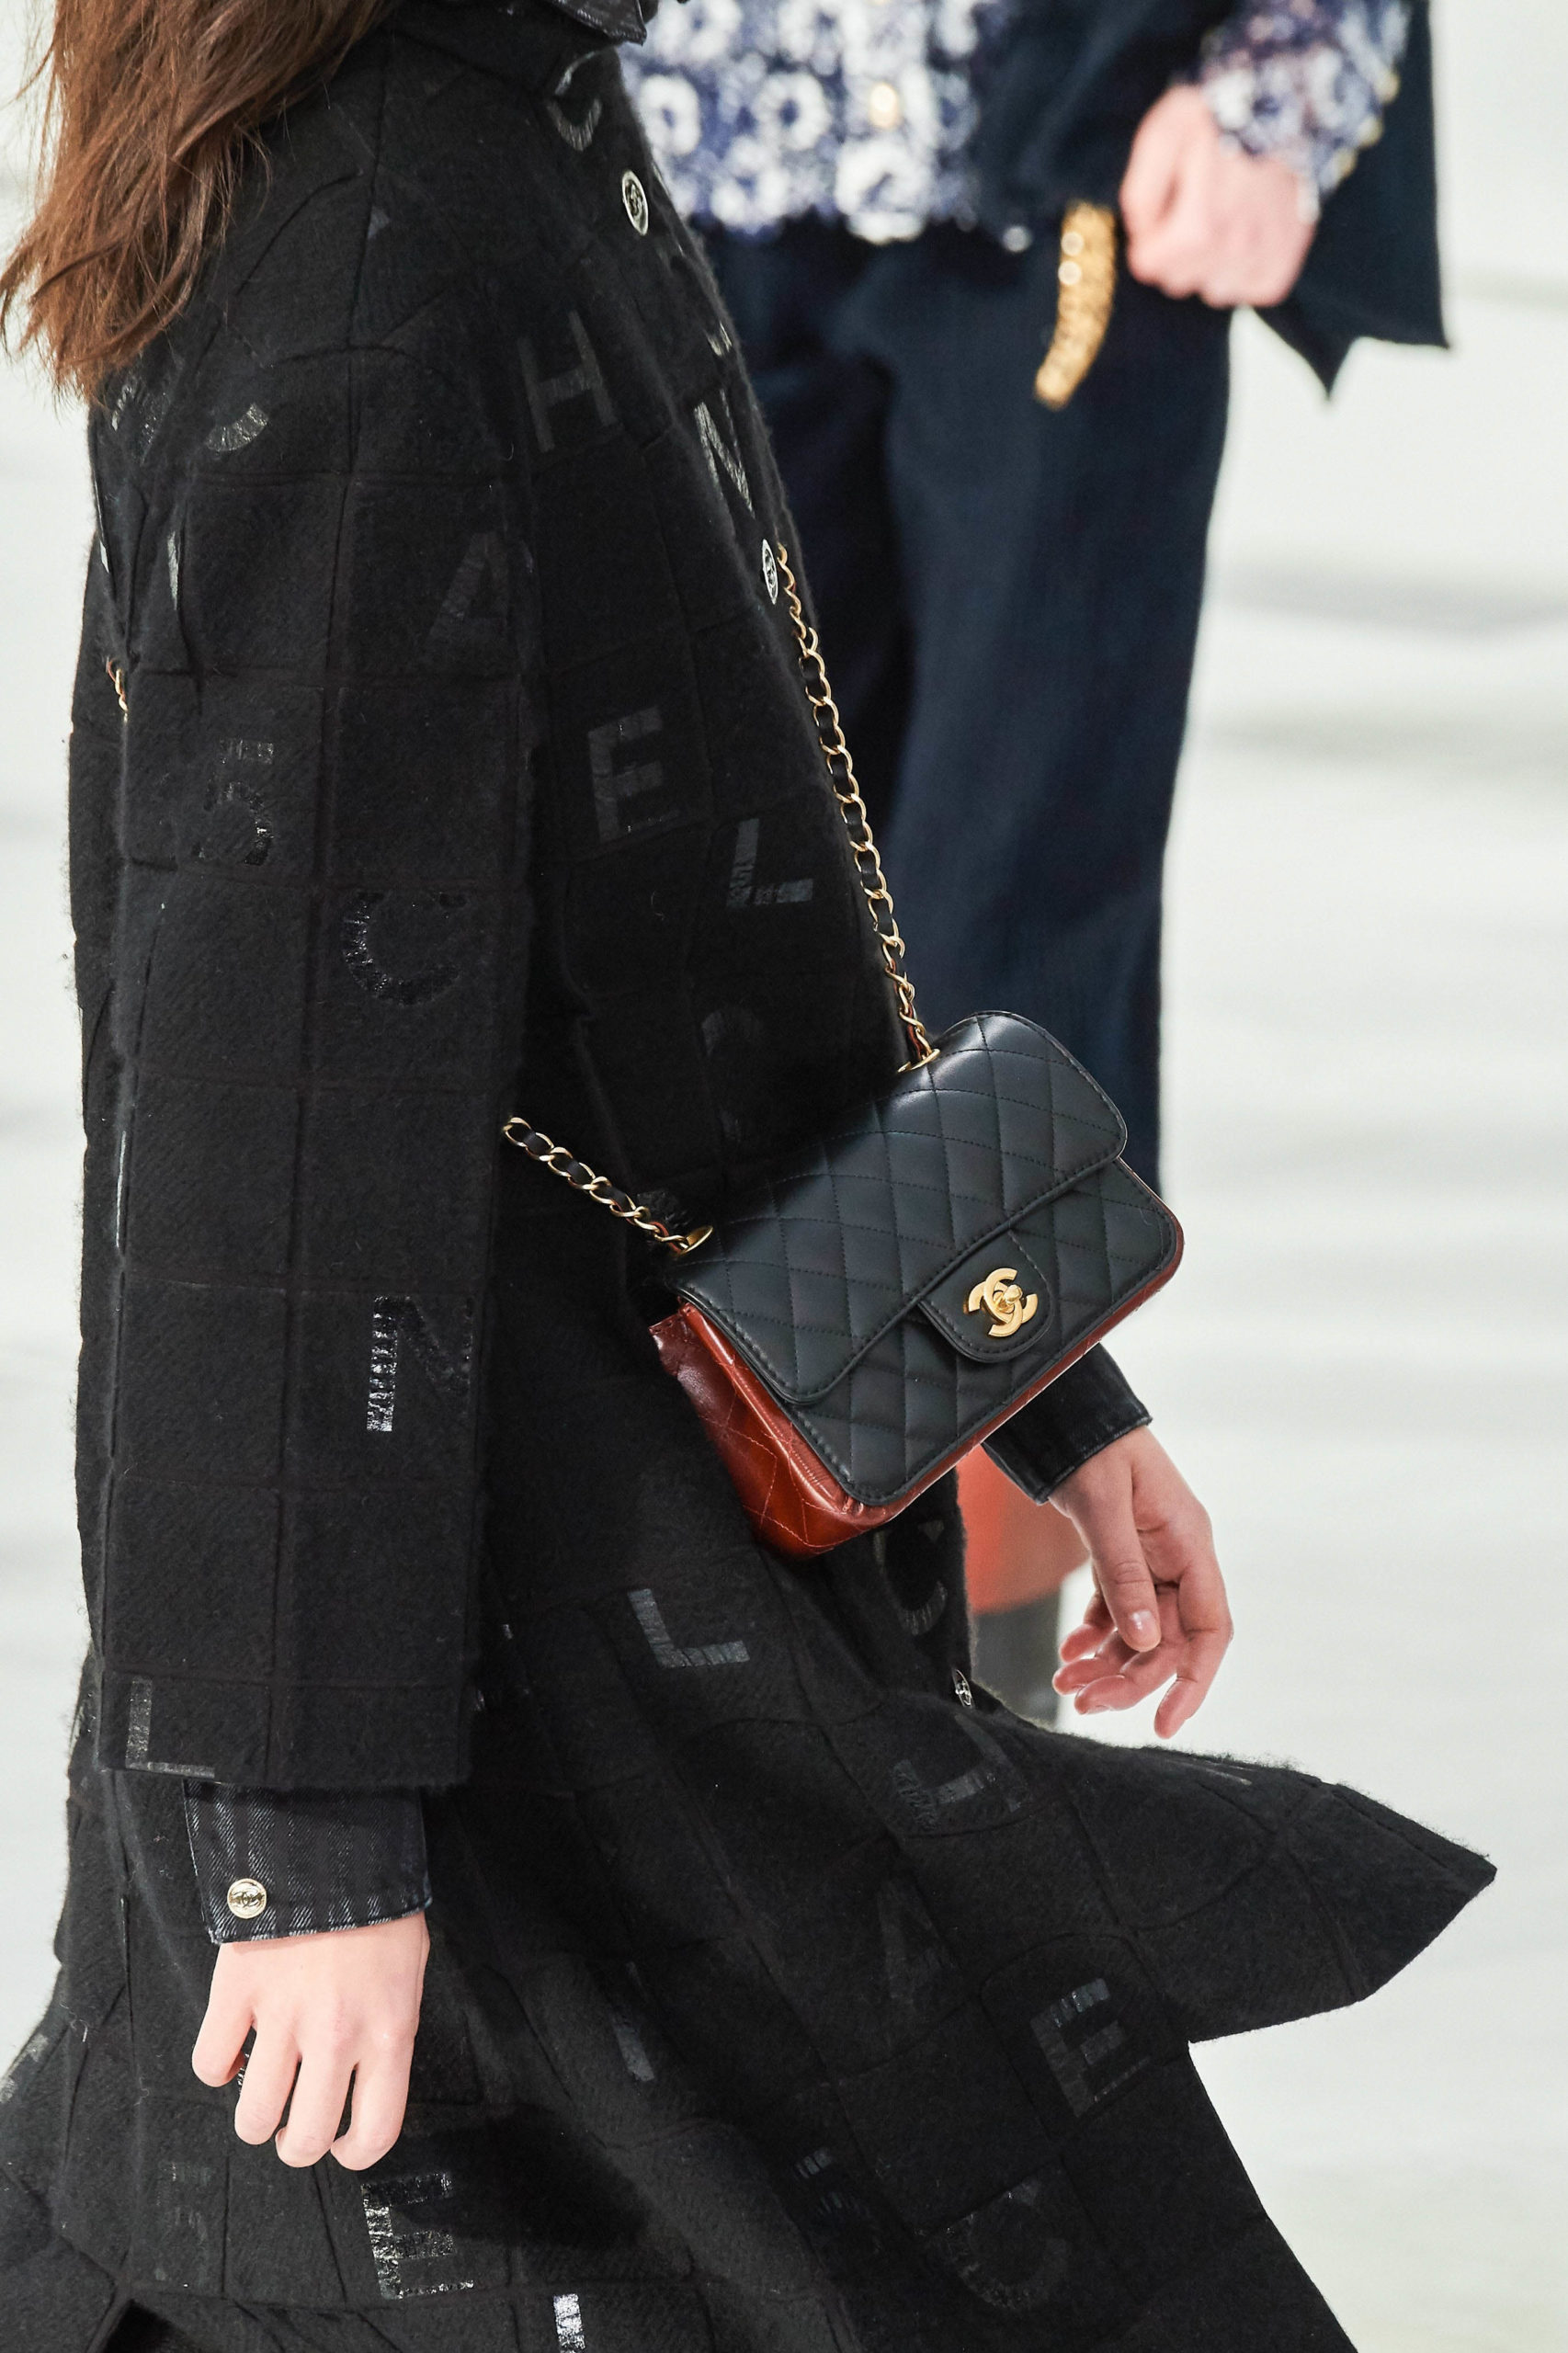 Chanel Fall Winter 2020 trends runway coverbagage Ready To Wear Vogue vintage feel bag